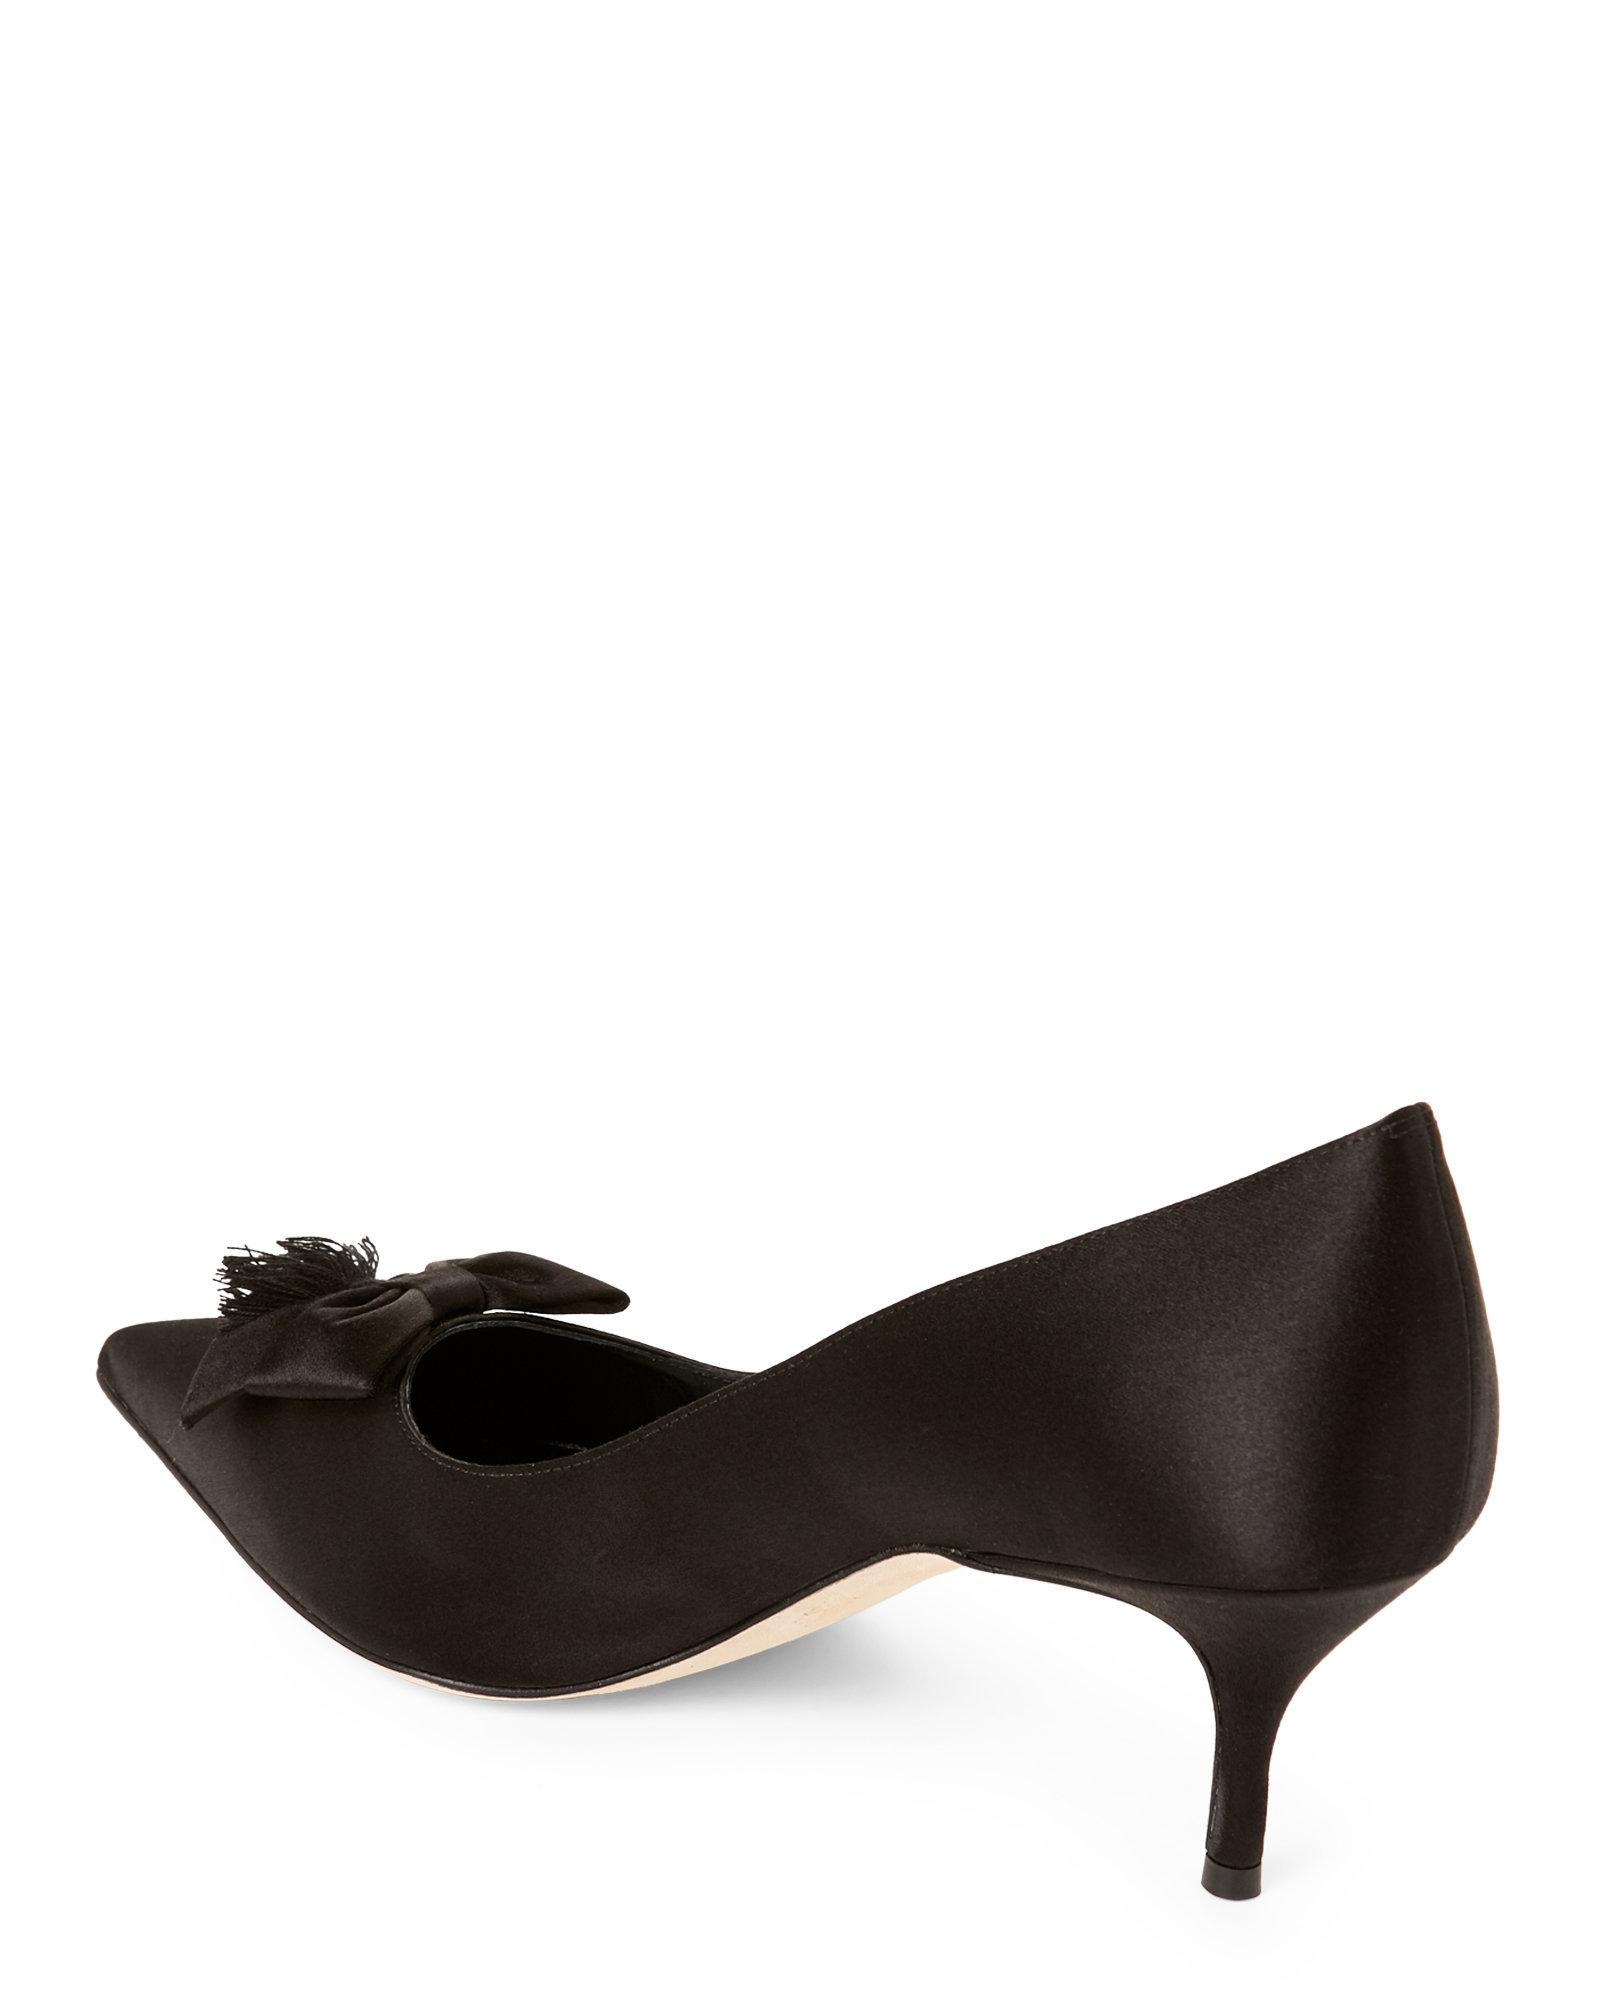 Manolo Blahnik Karung Bow-Accented Mules cheap sale for nice buy cheap clearance pay with visa for sale LdsWzUykEv